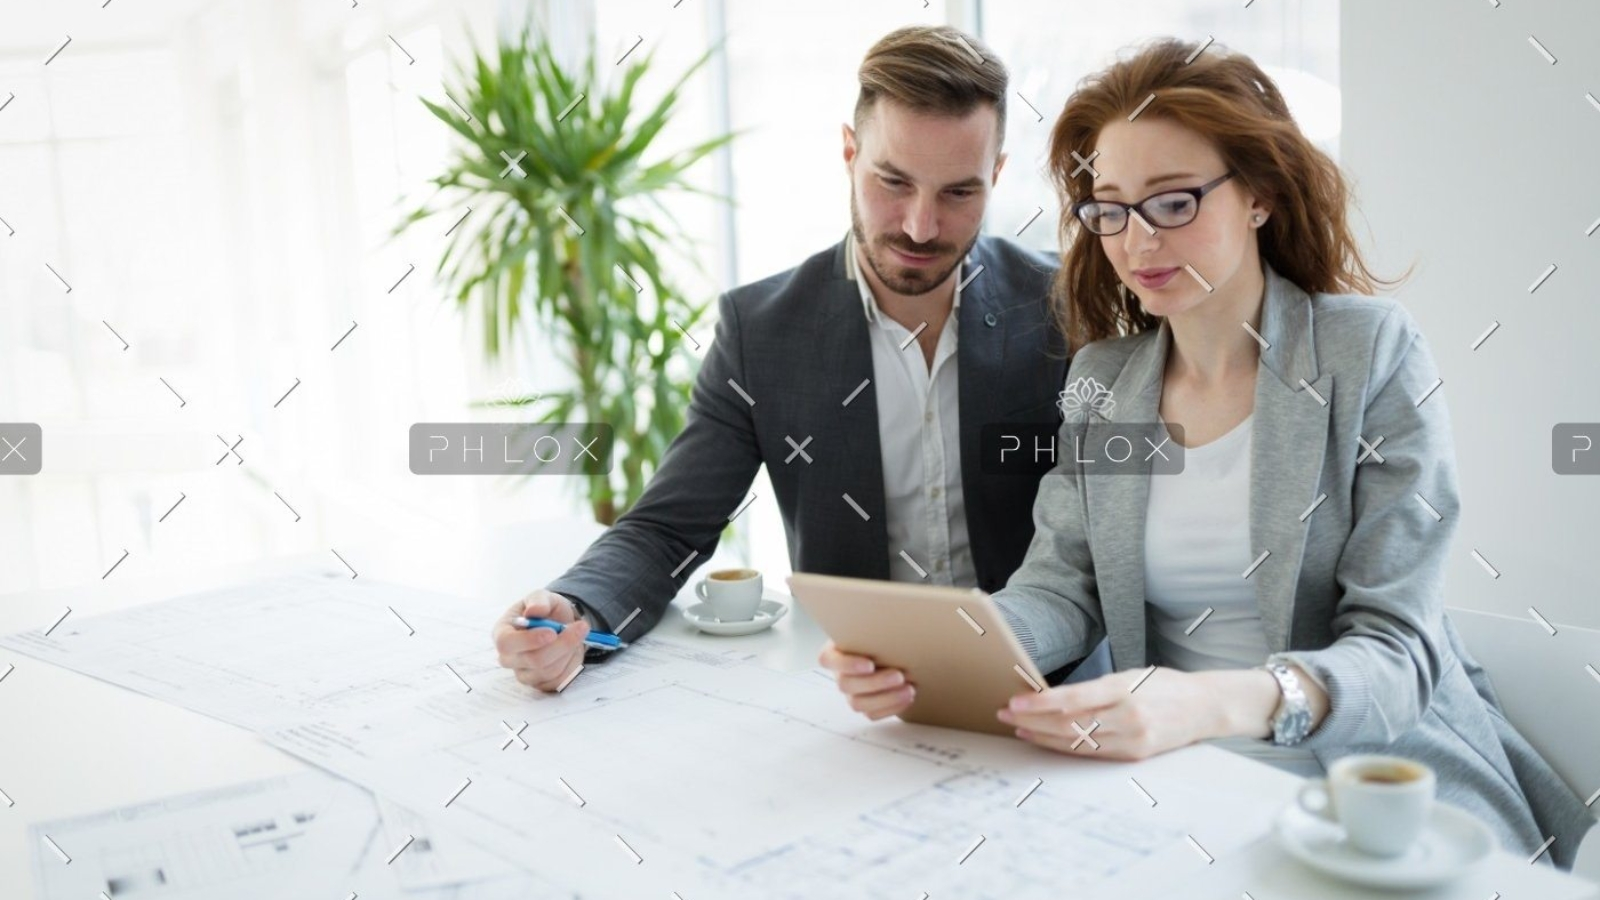 demo-attachment-818-portrait-of-young-architect-woman-on-meeting-KFZCE3A